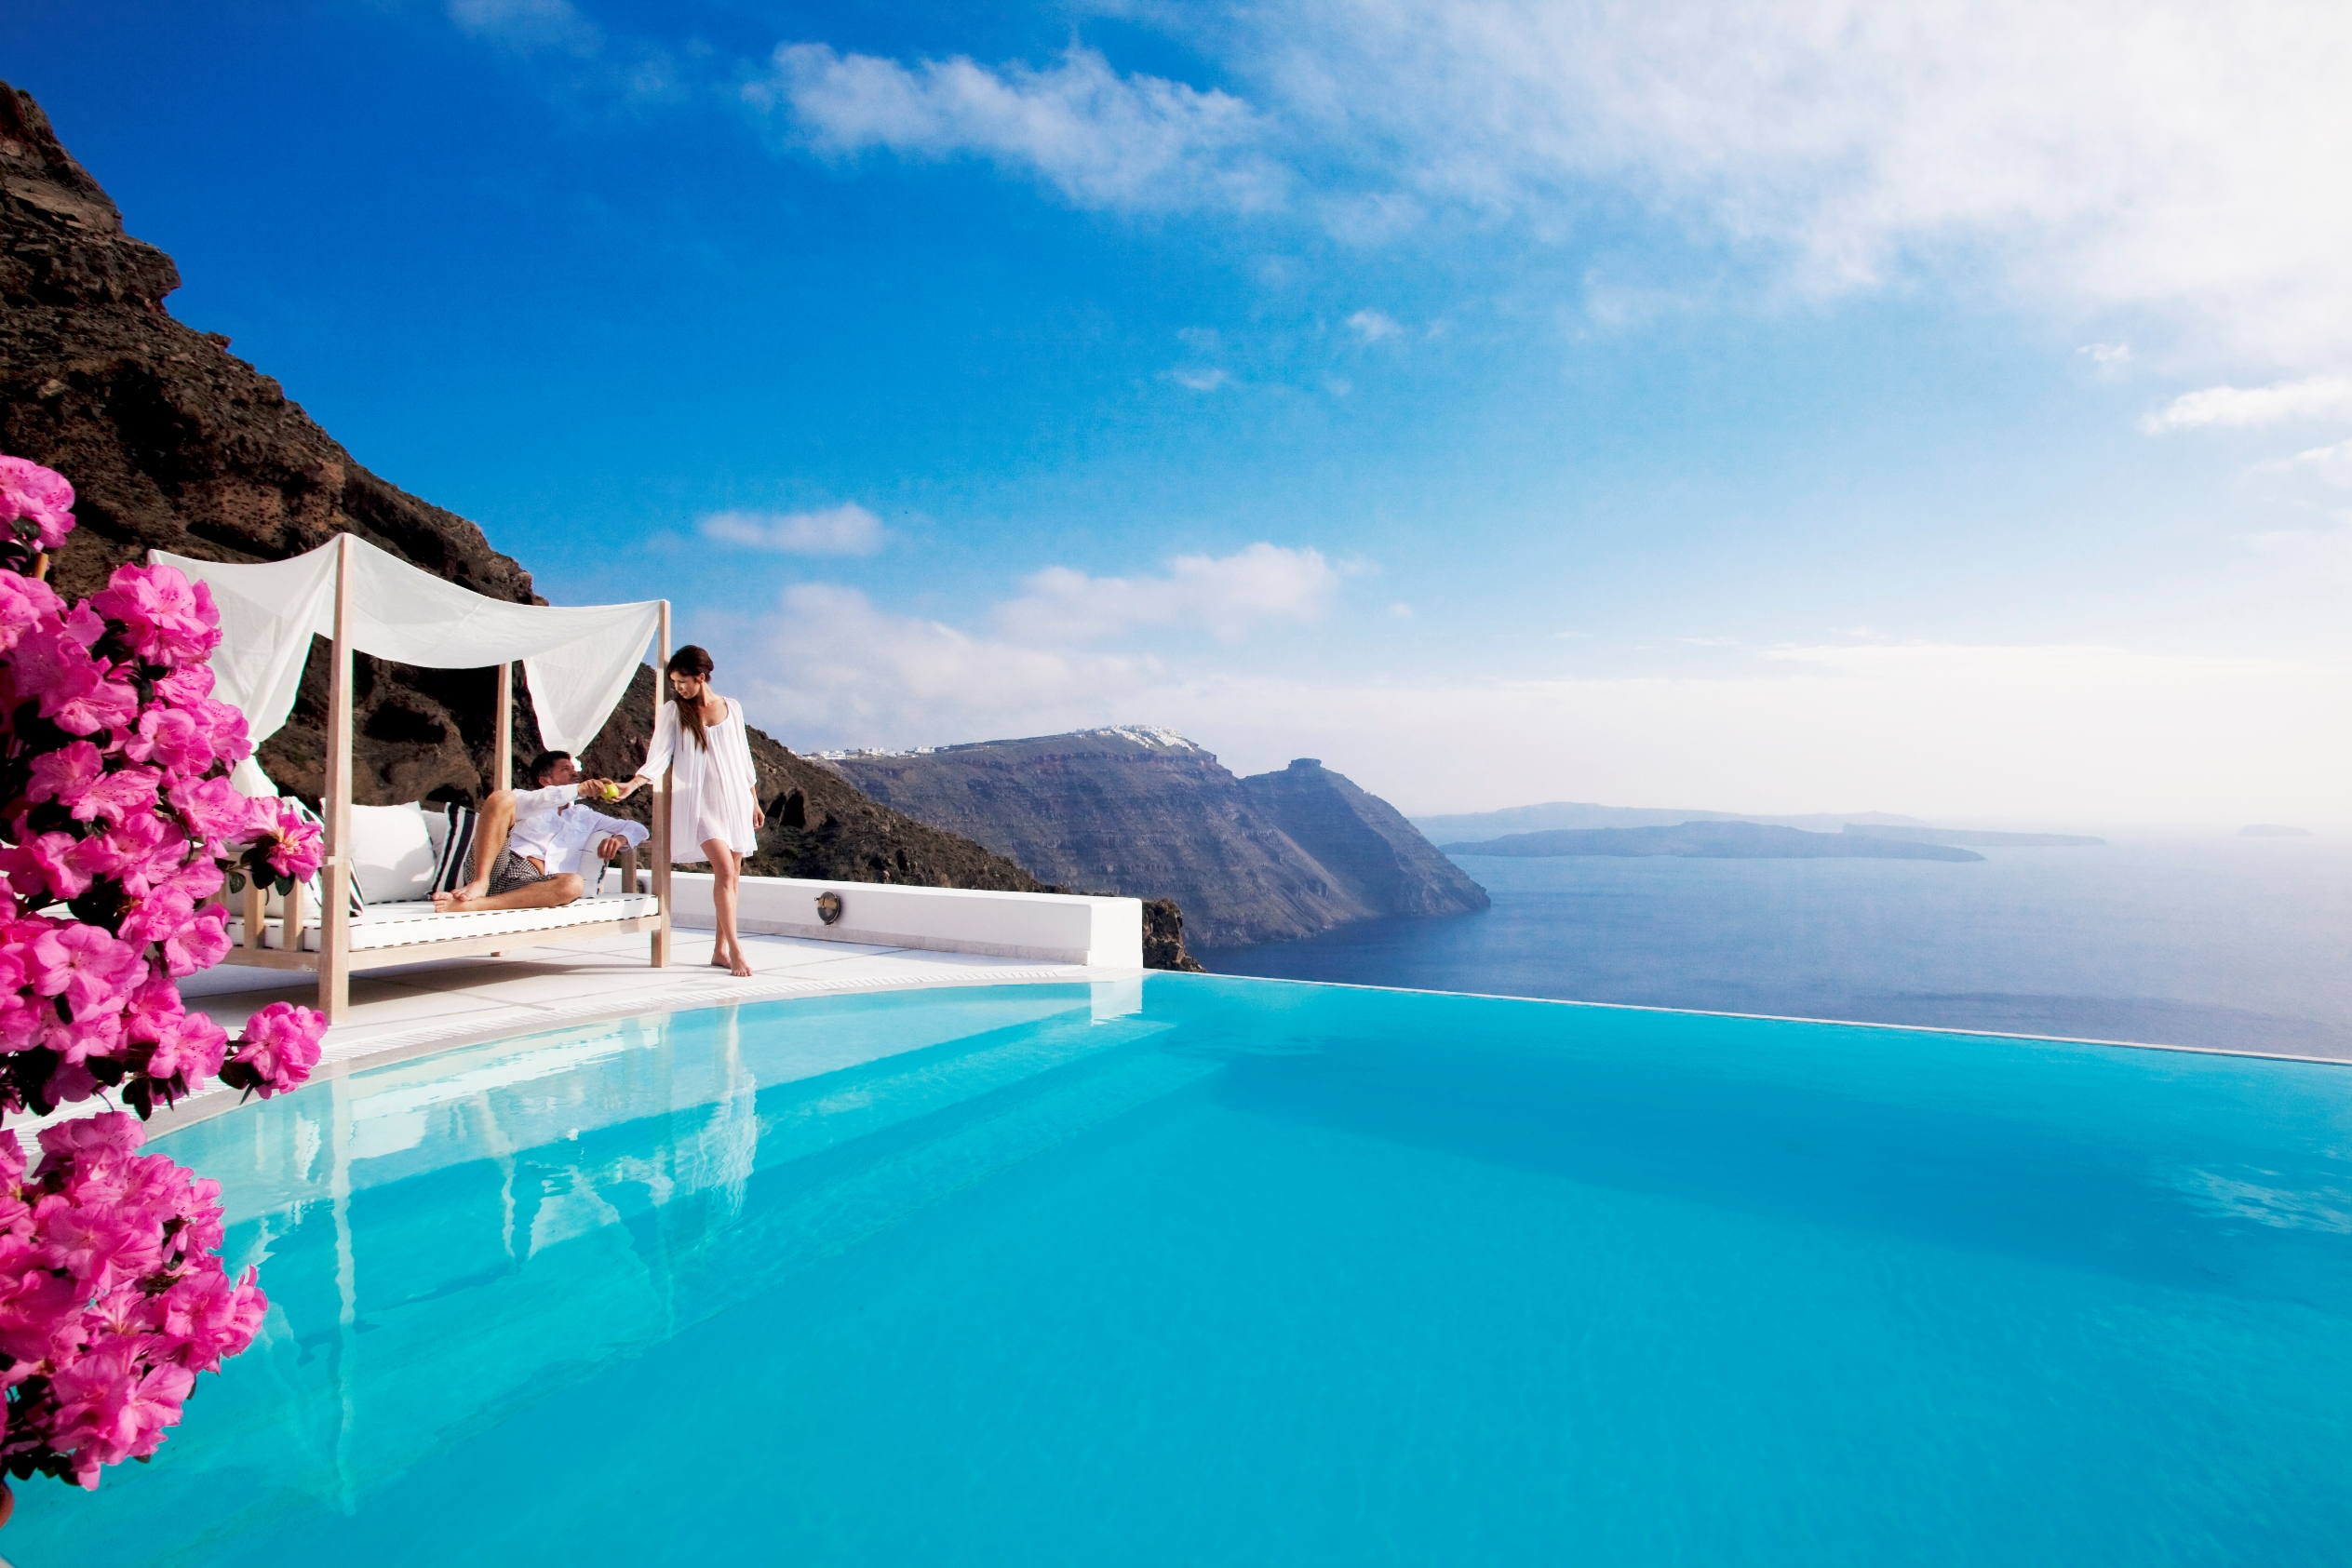 News for Top hotels of the world